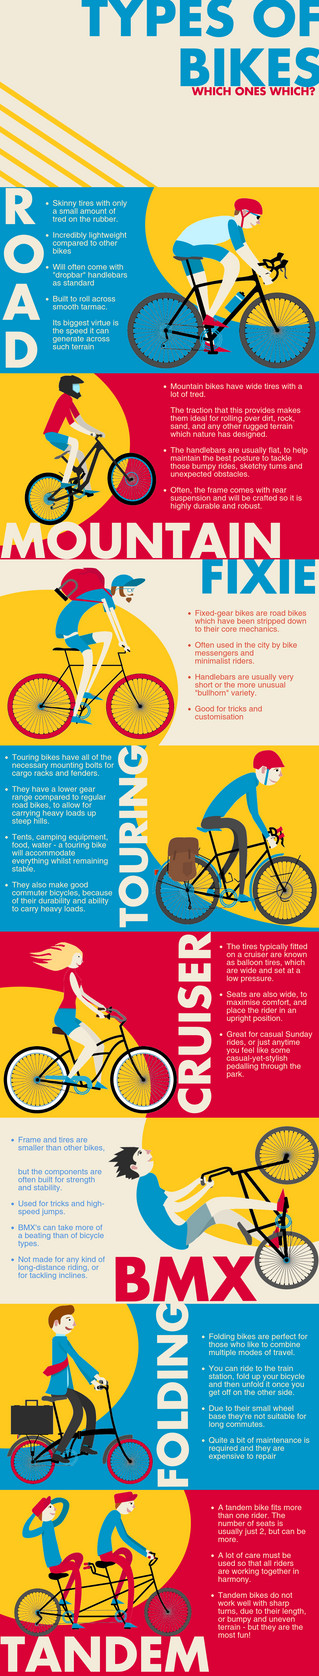 Types of Bike - A visual quickfire guide.....